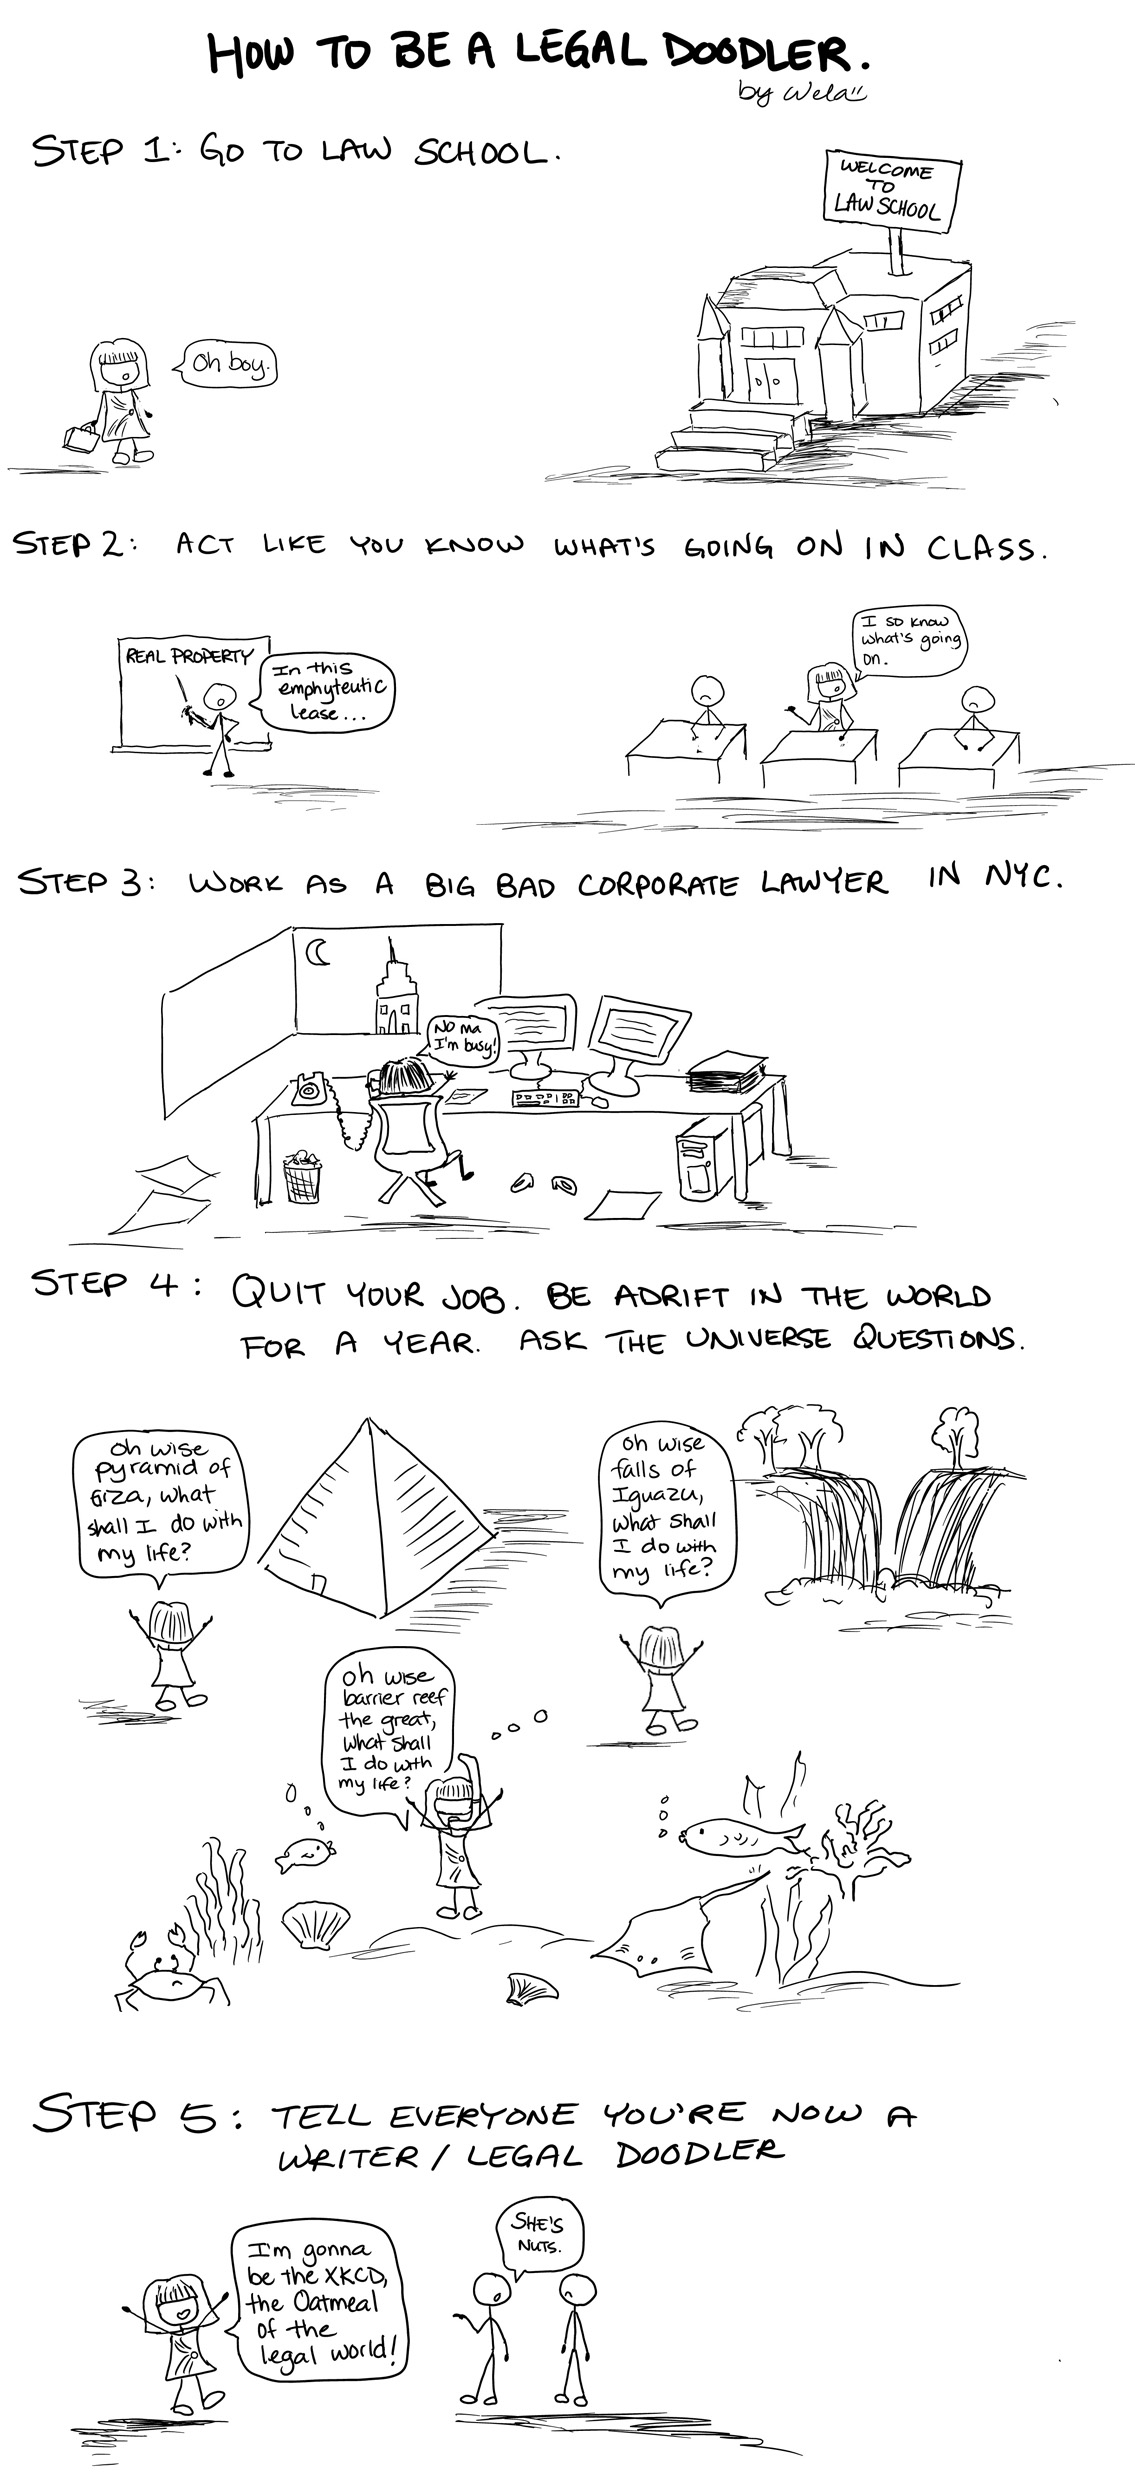 010 - How to be a Legal Doodler